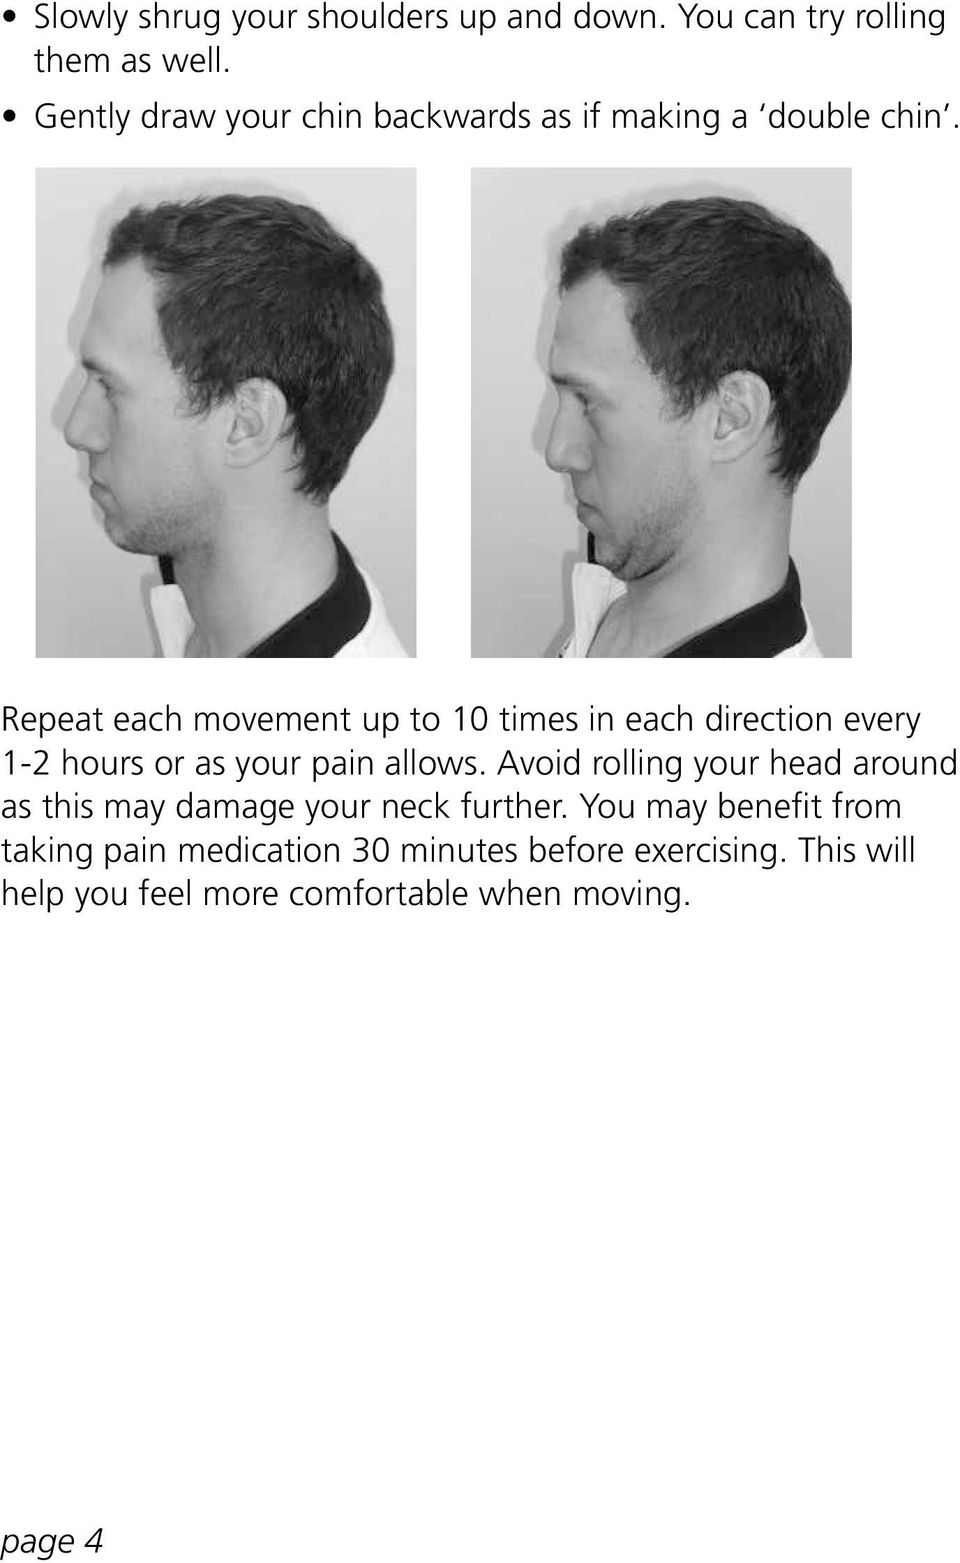 Repeat each movement up to 10 times in each direction every 1-2 hours or as your pain allows.